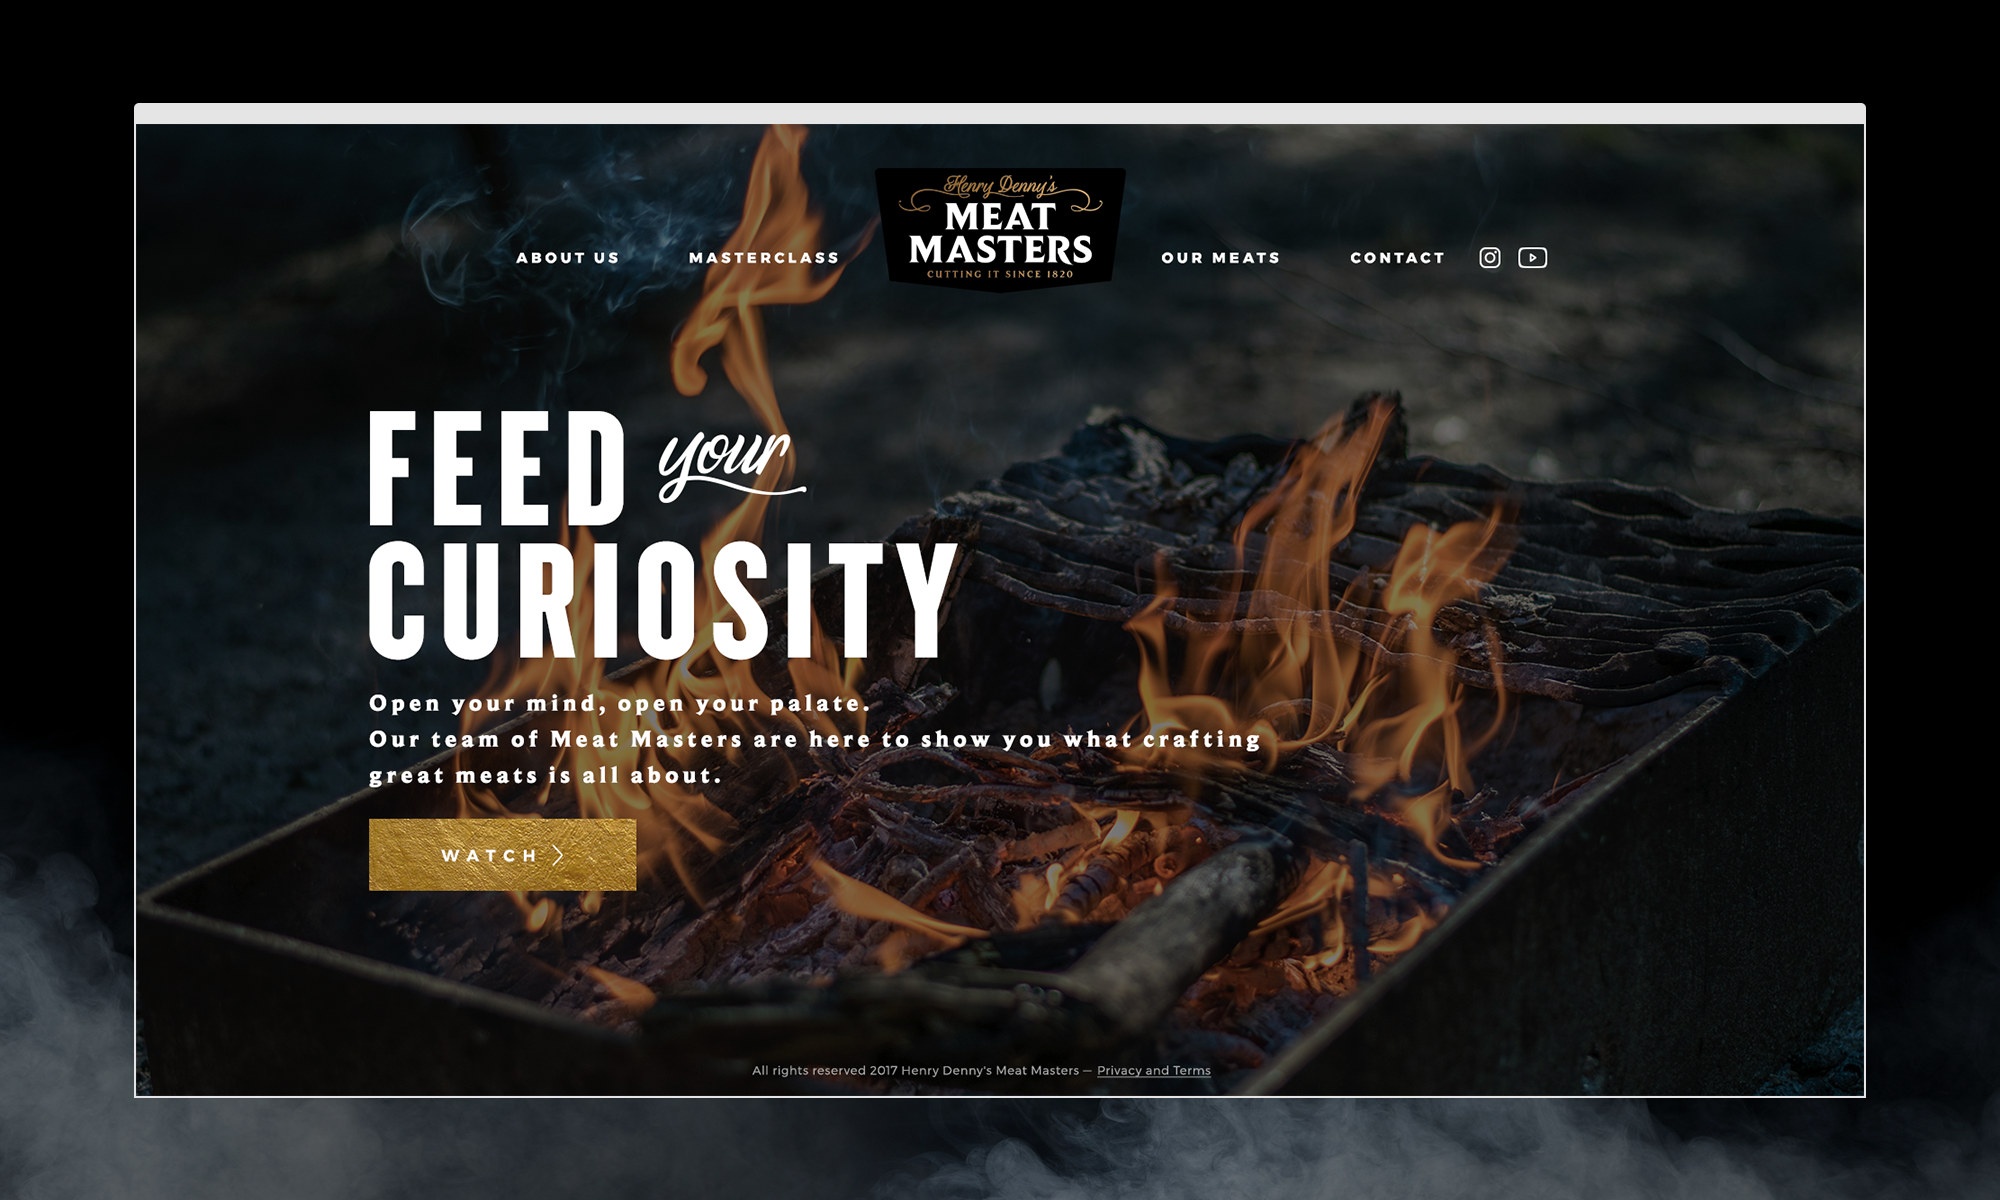 Cover image: Henry Denny's Meat Masters website